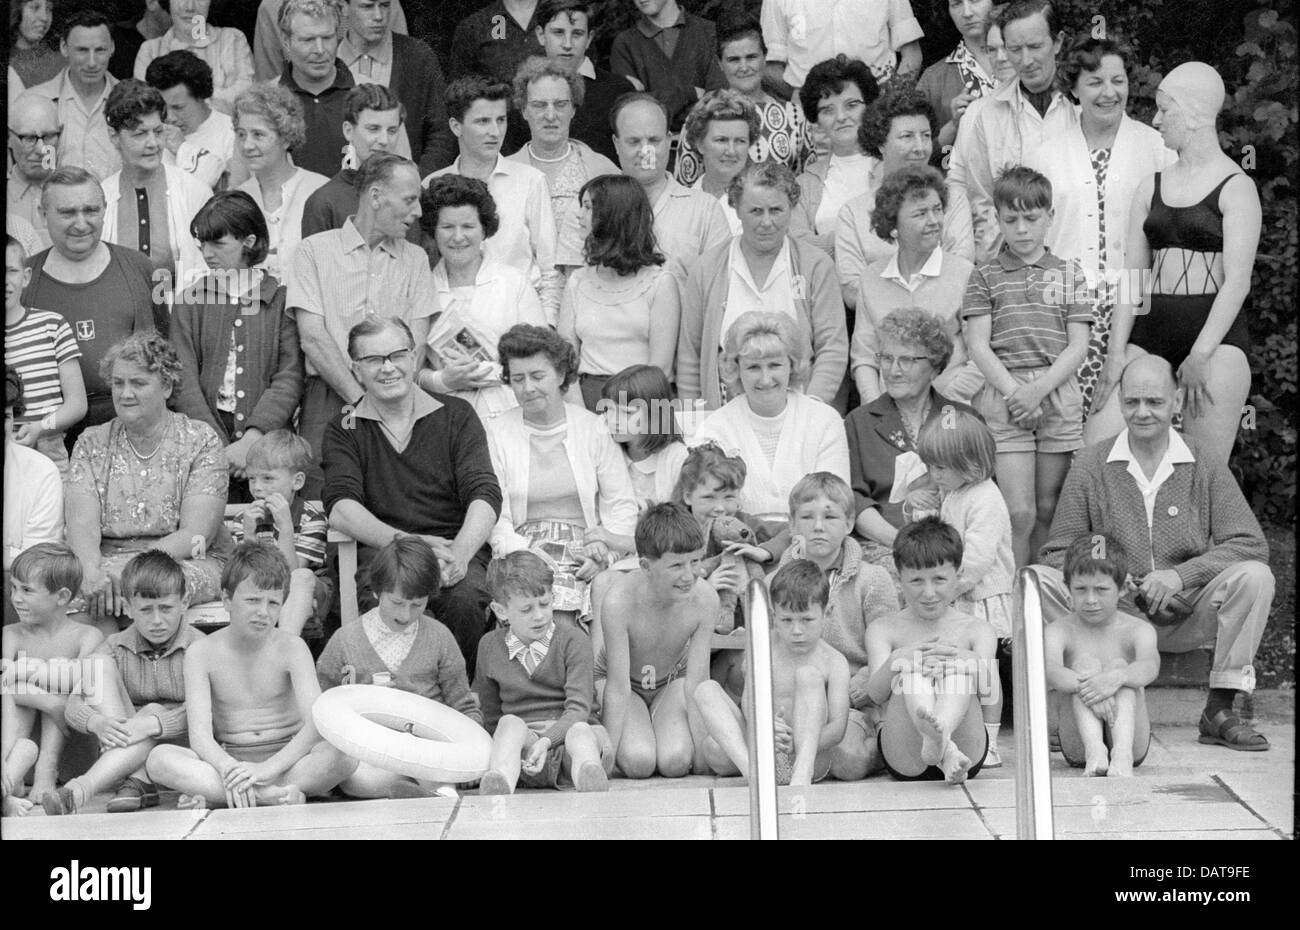 Group Photo, Butlins 1962 - Stock Image